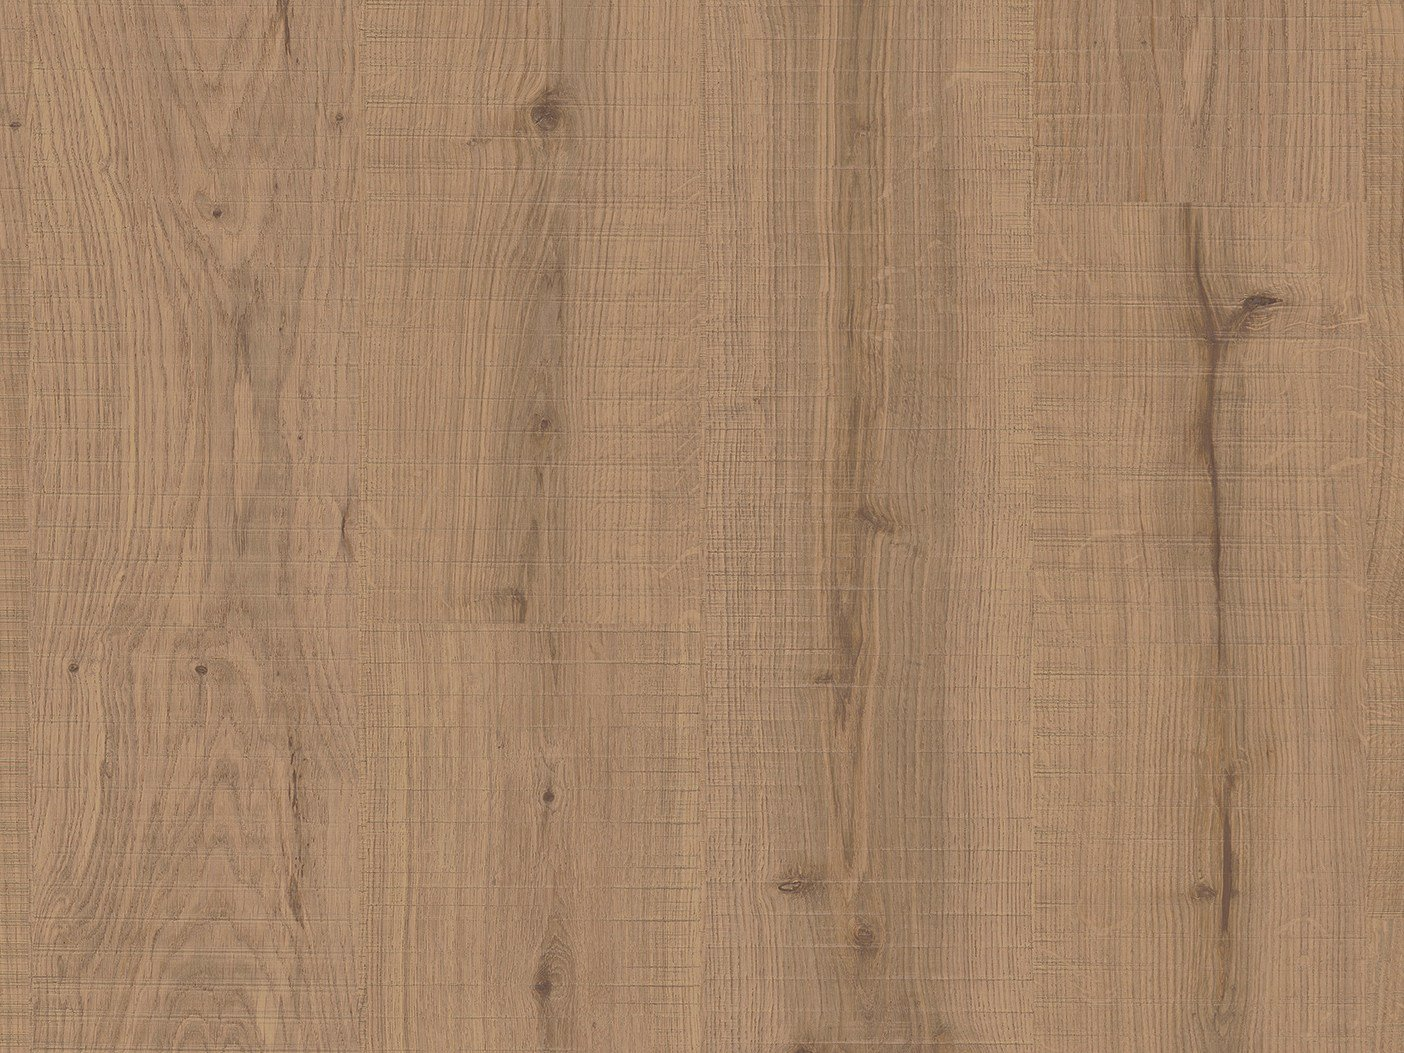 Pergo laminate flooring quality 28 images l0323 for Pergo laminate flooring uk